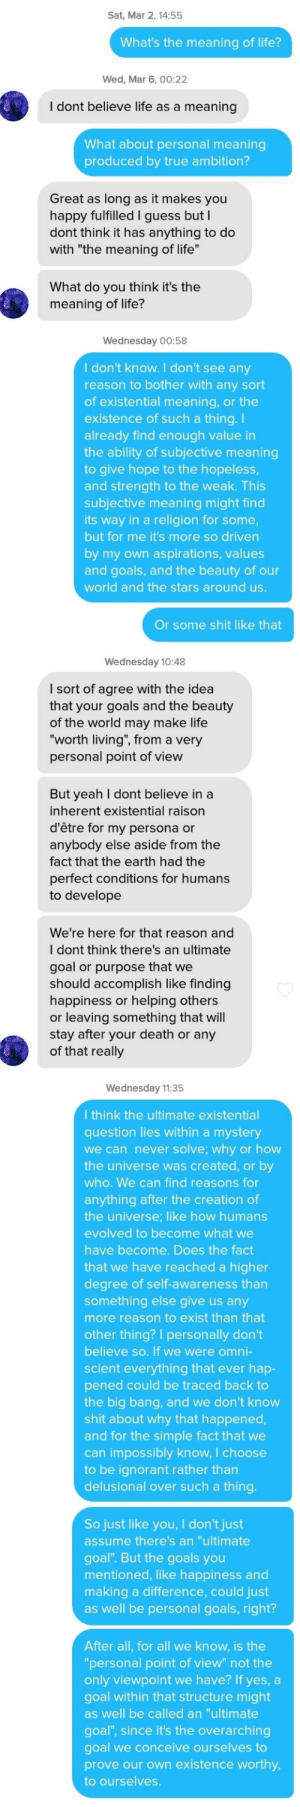 """Her discription said """"I talk about existentialism a lot"""". I got a bit too excited and scared her off (she didn't reply after this): Sat, Mar 2, 14:55  What's the meaning of life?  Wed, Mar 6, 00:22  I dont believe life as a meaning  What about personal meaning  produced by true ambition?  Great as long as it makes you  happy fulfilled I guess but I  dont think it has anything to do  with """"the meaning of life  What do you think it's the  meaning of life?  Wednesday 00:58  I don't know. I don't see any  reason to bother with any sort  of existential meaning, or the  existence of such a thing. I  already find enough value in  the ability of subjective meaning  to give hope to the hopeless  and strength to the weak. This  subjective meaning might find  its way in a religion for some  but for me it's more so driven  by my own aspirations, values  and goals, and the beauty of our  world and the stars around us  Or some shit like that  Wednesday 10:48  I sort of agree with the idea  that your goals and the beauty  of the world may make life  worth living"""", from a very  personal point of view  ut yeah I dont believe in a  inherent existential raison  d'être for my persona or  anybody else aside from the  fact that the earth had the  perfect conditions for humans  to develope  We're here for that reason and  I dont think there's an ultimate  goal or purpose that we  should accomplish like finding  happiness or helping others  or leaving something that will  stay after your death or any  of that really  Wednesday 11:35  I think the ultimate existential  question lies within a mystery  we can never solve; why or how  the universe was created, or by  who. We can find reasons for  anything after the creation of  the universe; like how humans  evolved to become what we  have become. Does the fact  that we have reached a higher  degree of self-awareness tharn  something else give us any  more reason to exist than that  other thing? I personally don't  believe so. If we were omni- """